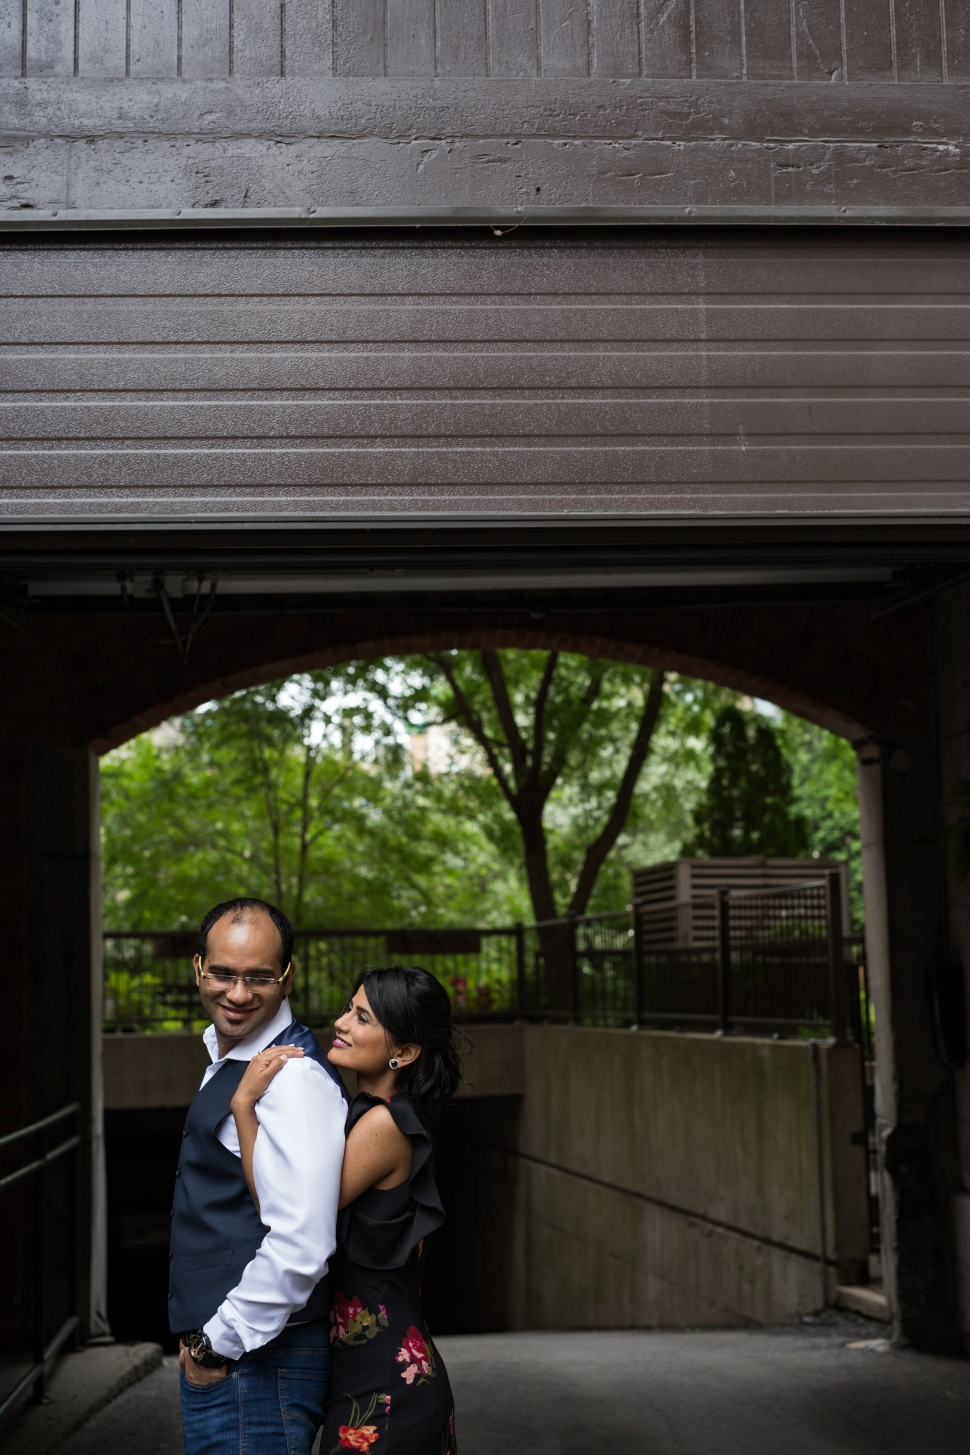 montreal_lifestyle_engagement_portraits_photographer_photography_photographe_fiancailles_ (14 of 15)